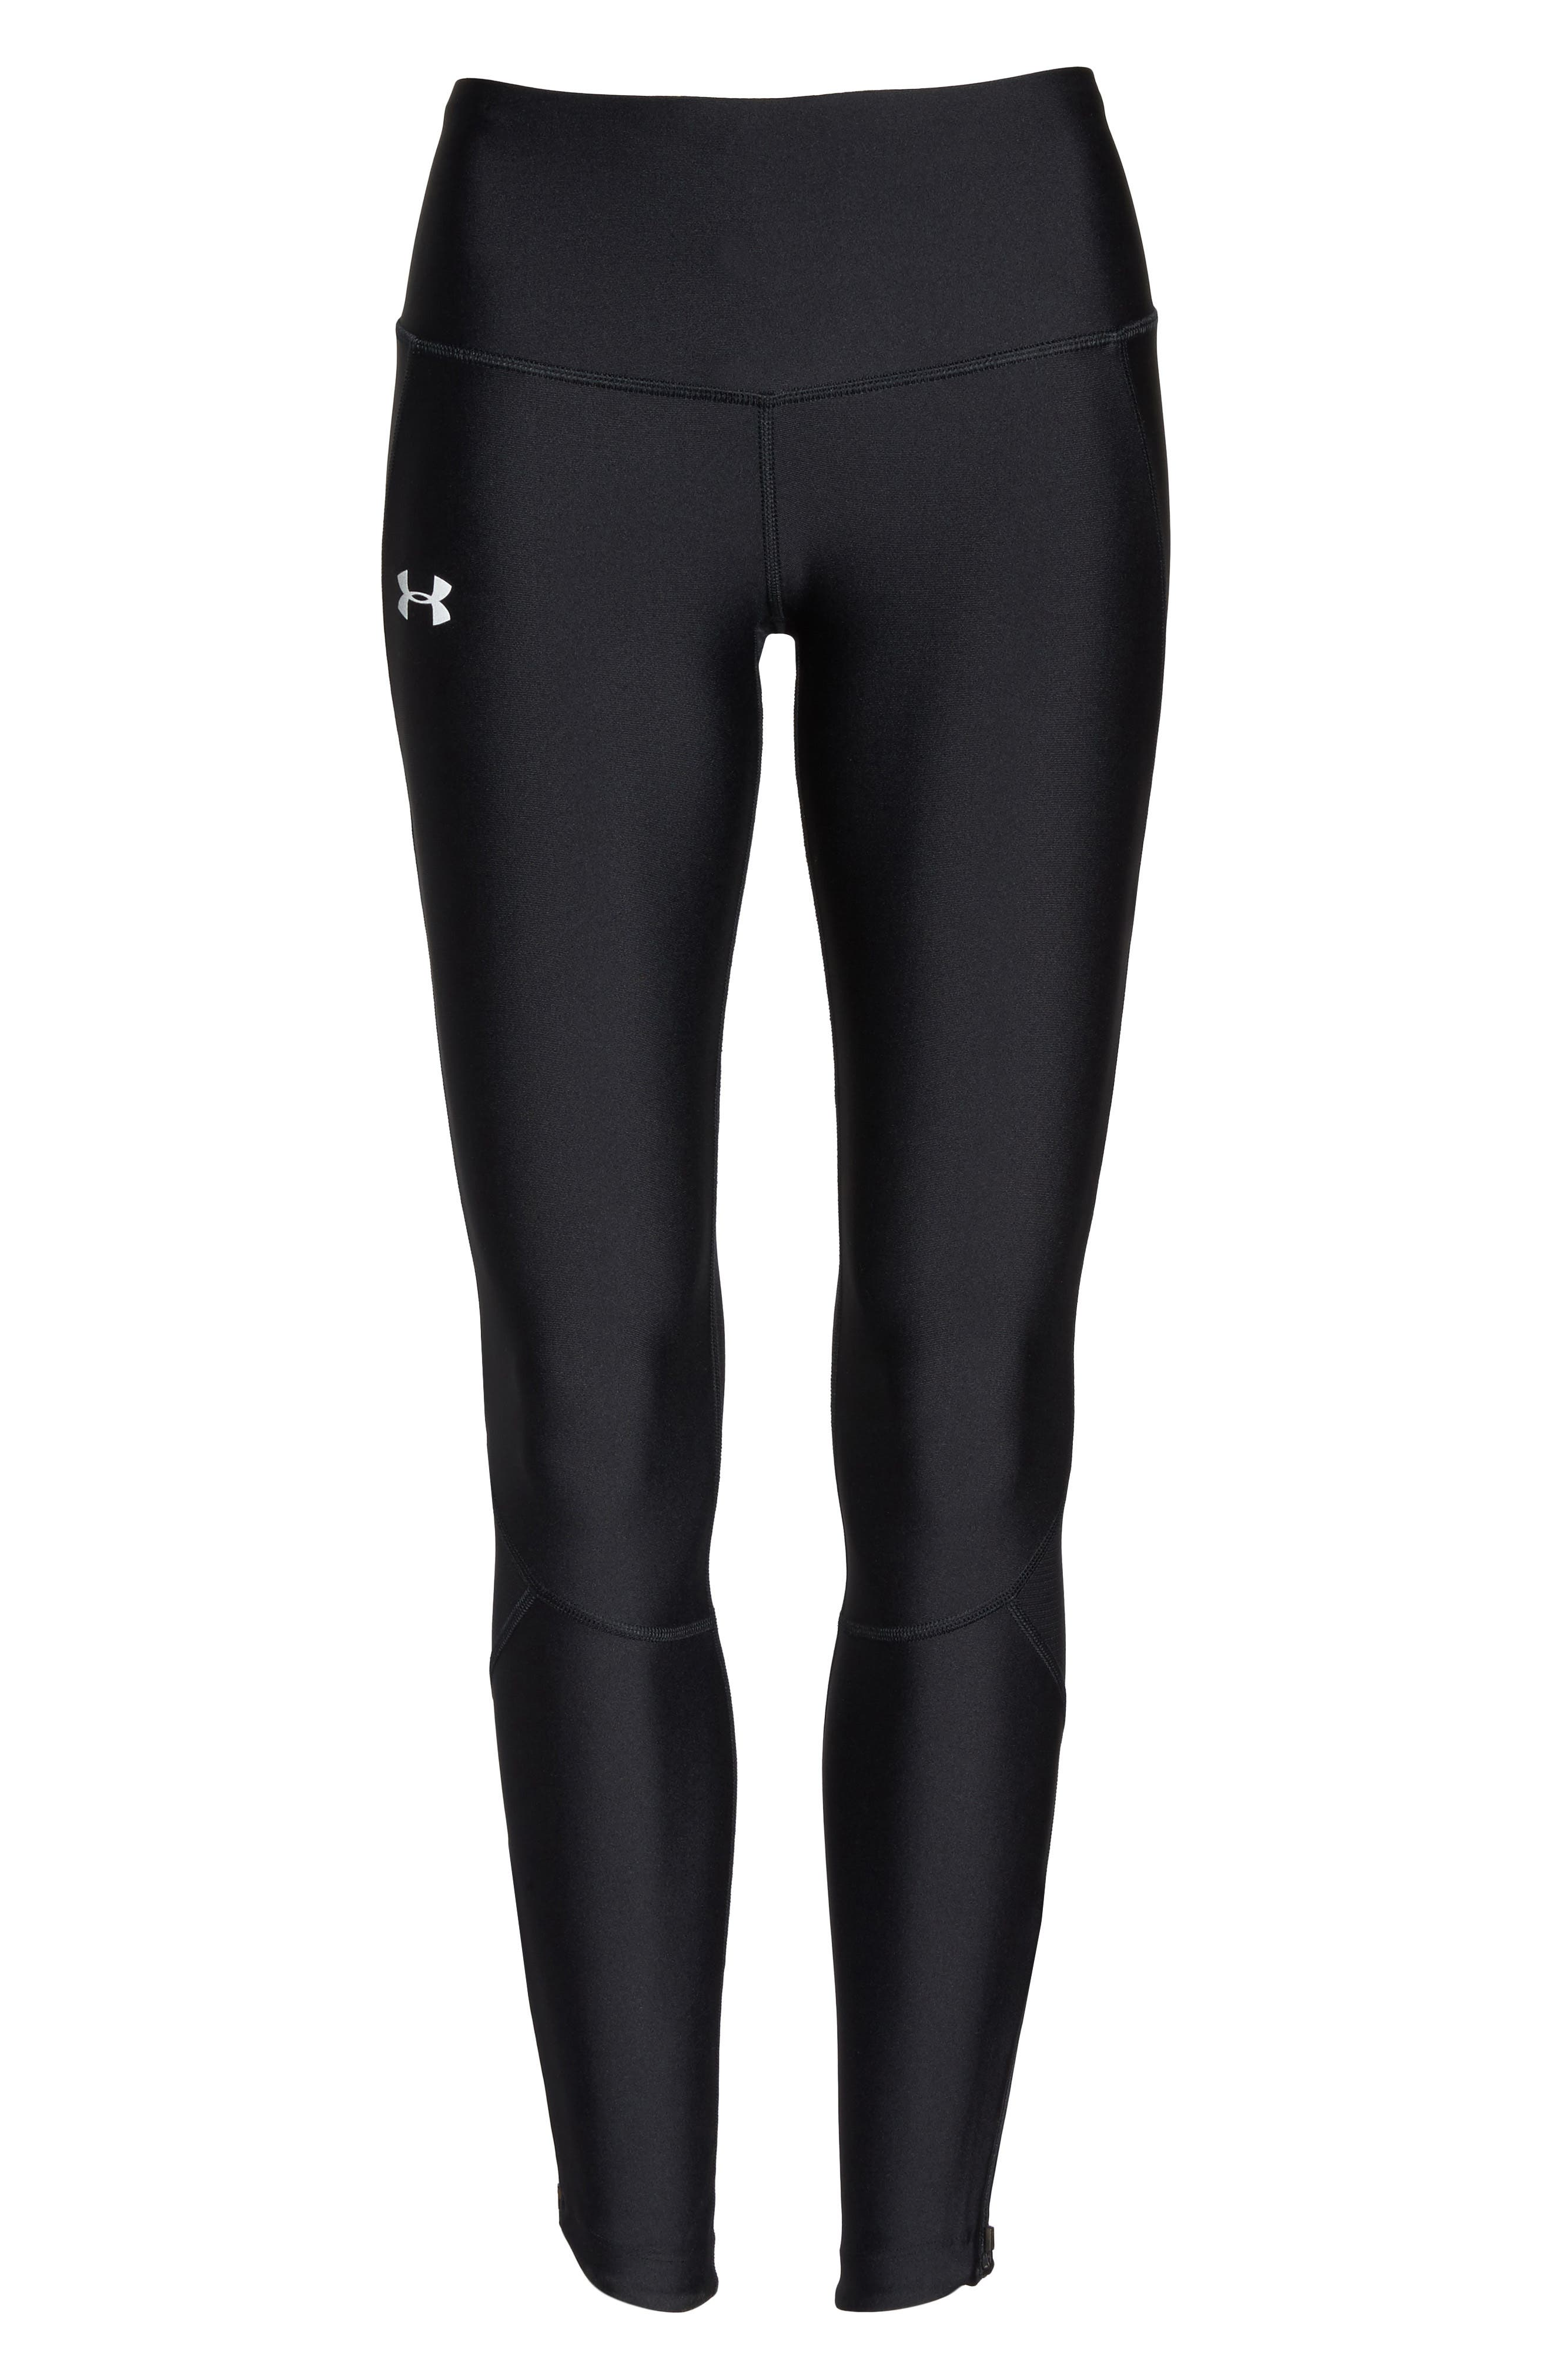 Fly Fast Tights,                             Alternate thumbnail 7, color,